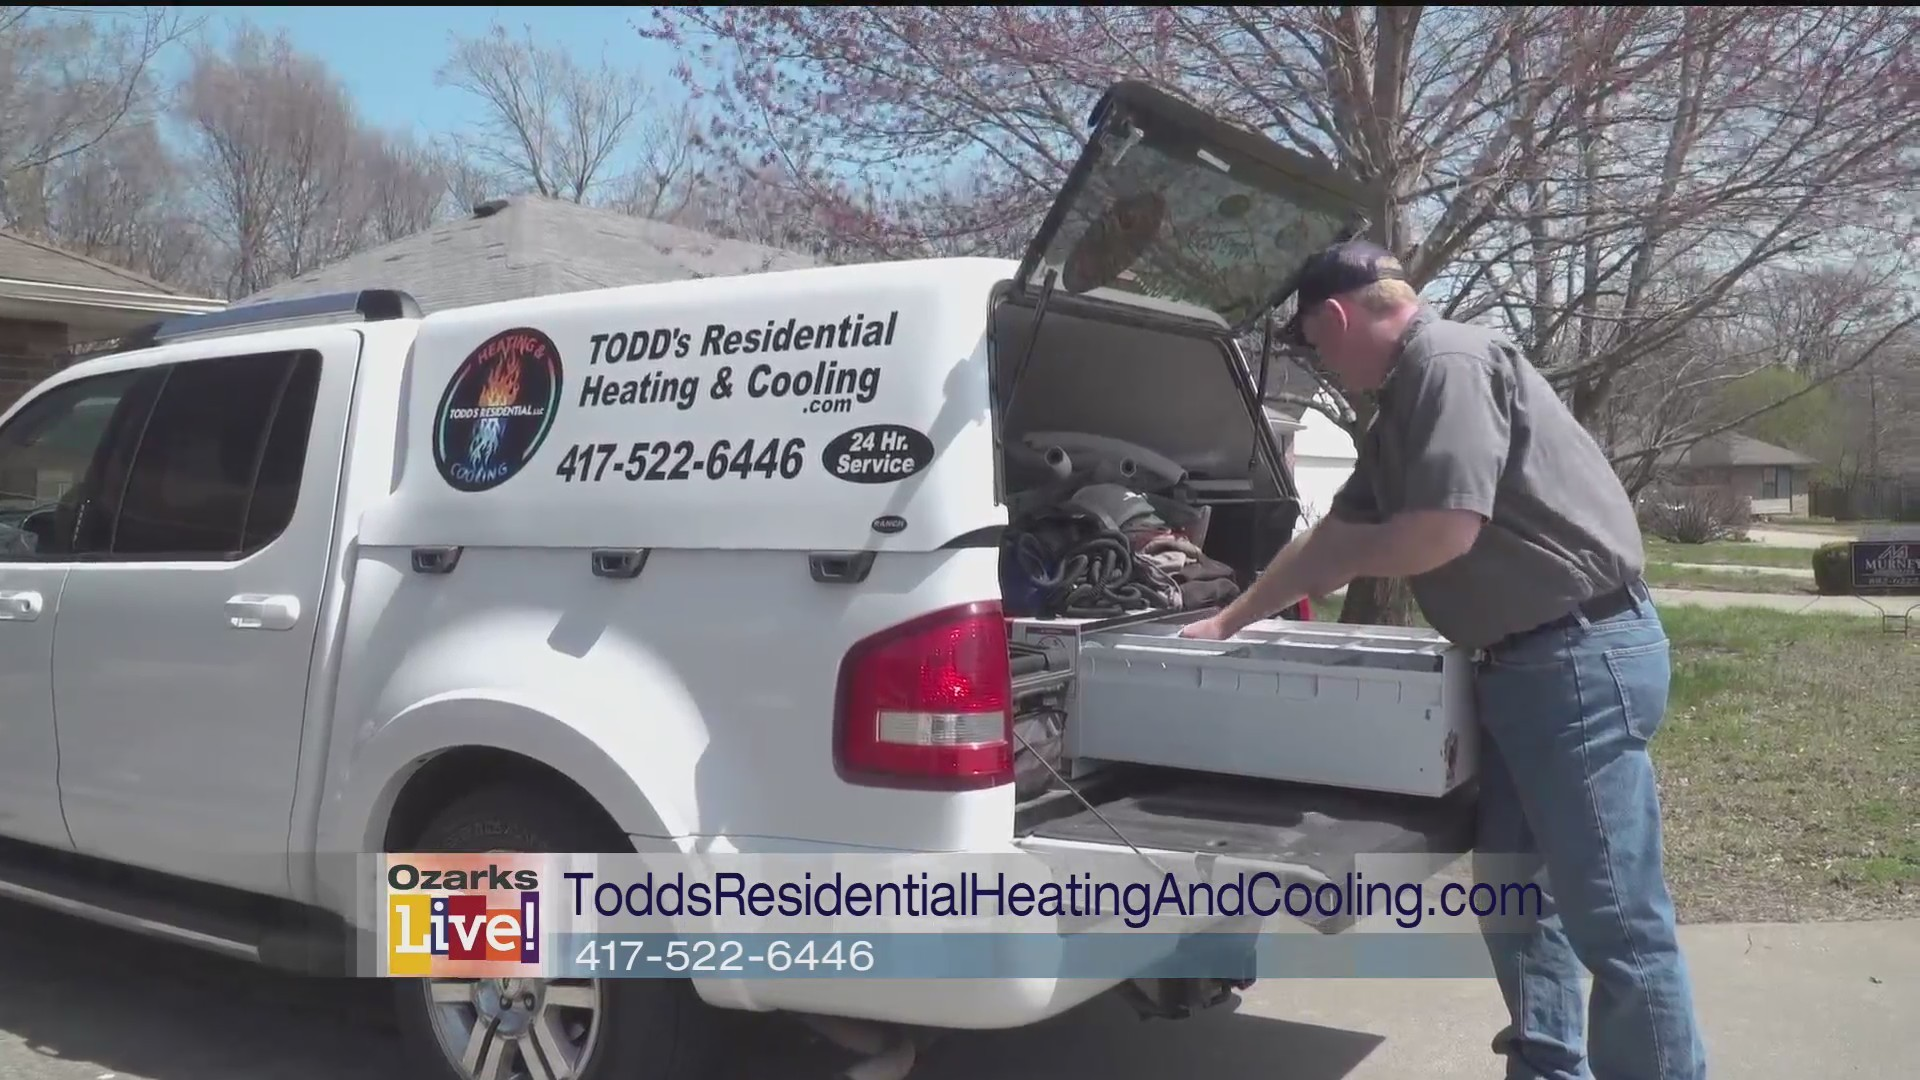 Todd's Residential Heating & Cooling - 5/9/19